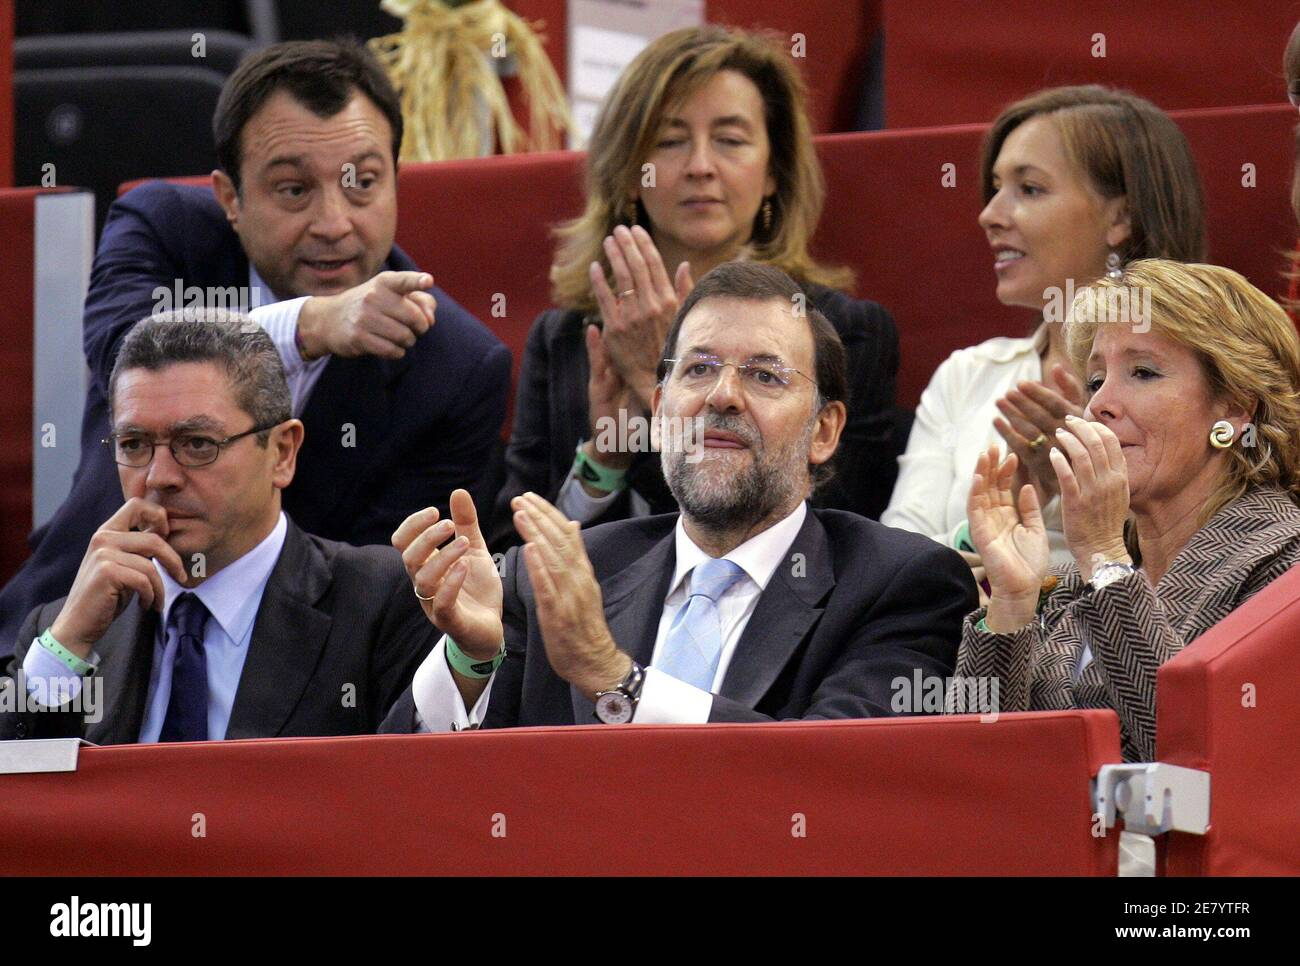 (bottom L-R) Madrid's mayor Alberto Ruiz-Gallardon, opposition leader Mariano Rajoy and President of Madrid's regional government Esperanza Aguirre attend the quarterfinal tennis match of U.S. Robby Ginepri and David Ferrer of Spain at the Madrid Masters Series tennis tournament in Spain, October 21, 2005. Ginepri won the match by 6-1 6-4. REUTERS/Andrea Comas Banque D'Images